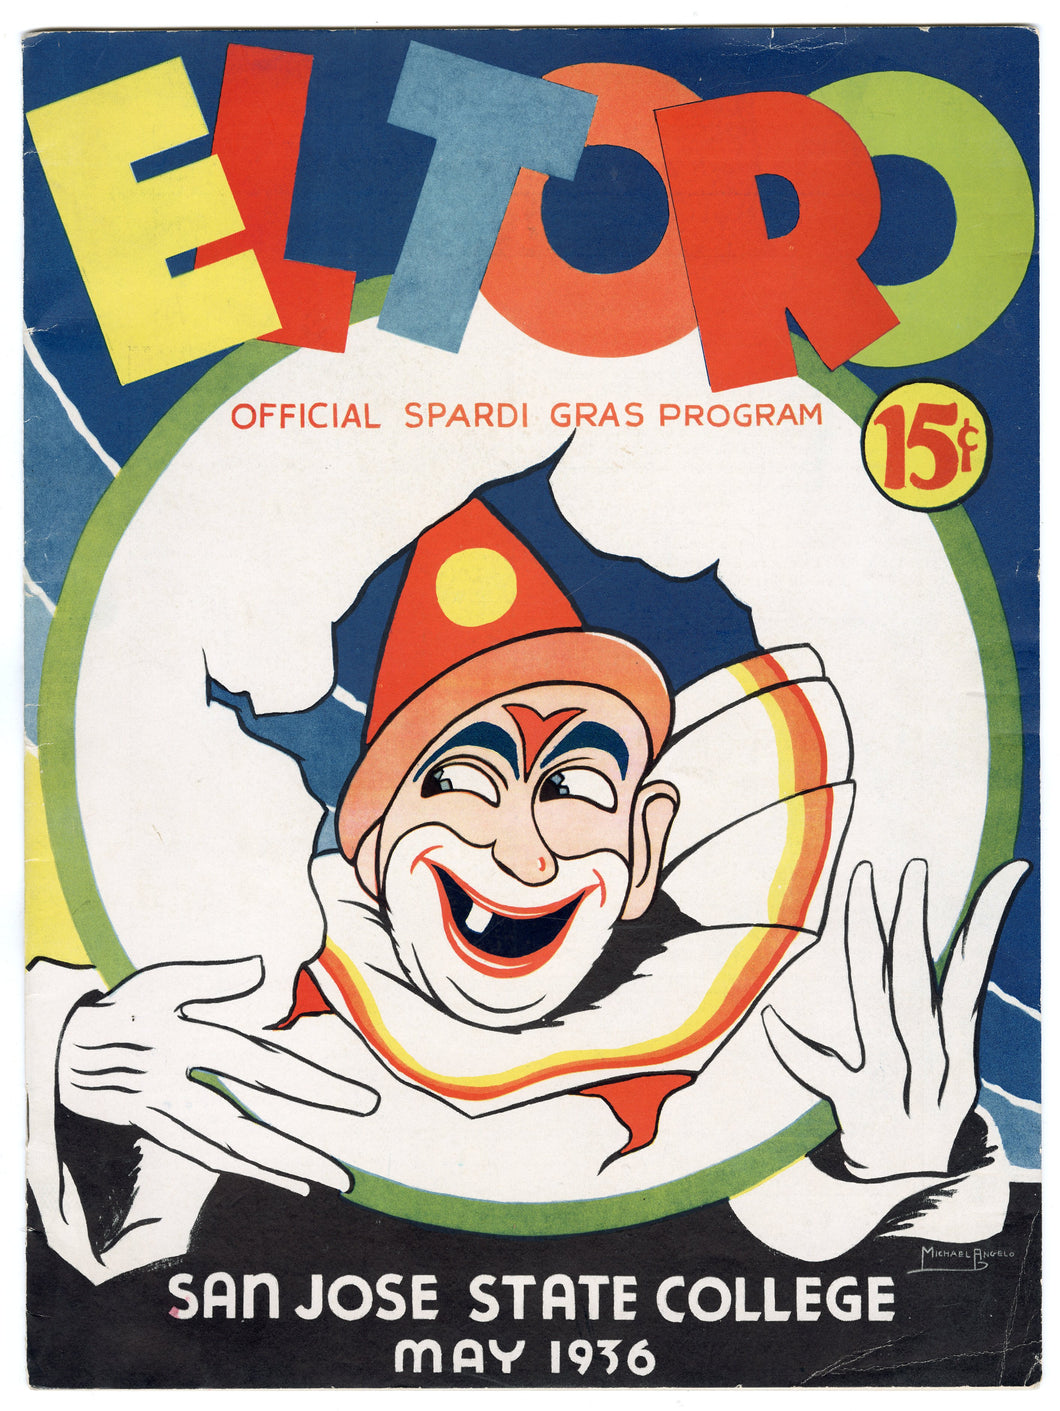 1936 EL TORO Official 'Spardi Gras' Program, San Jose State Magazine, Period Ads